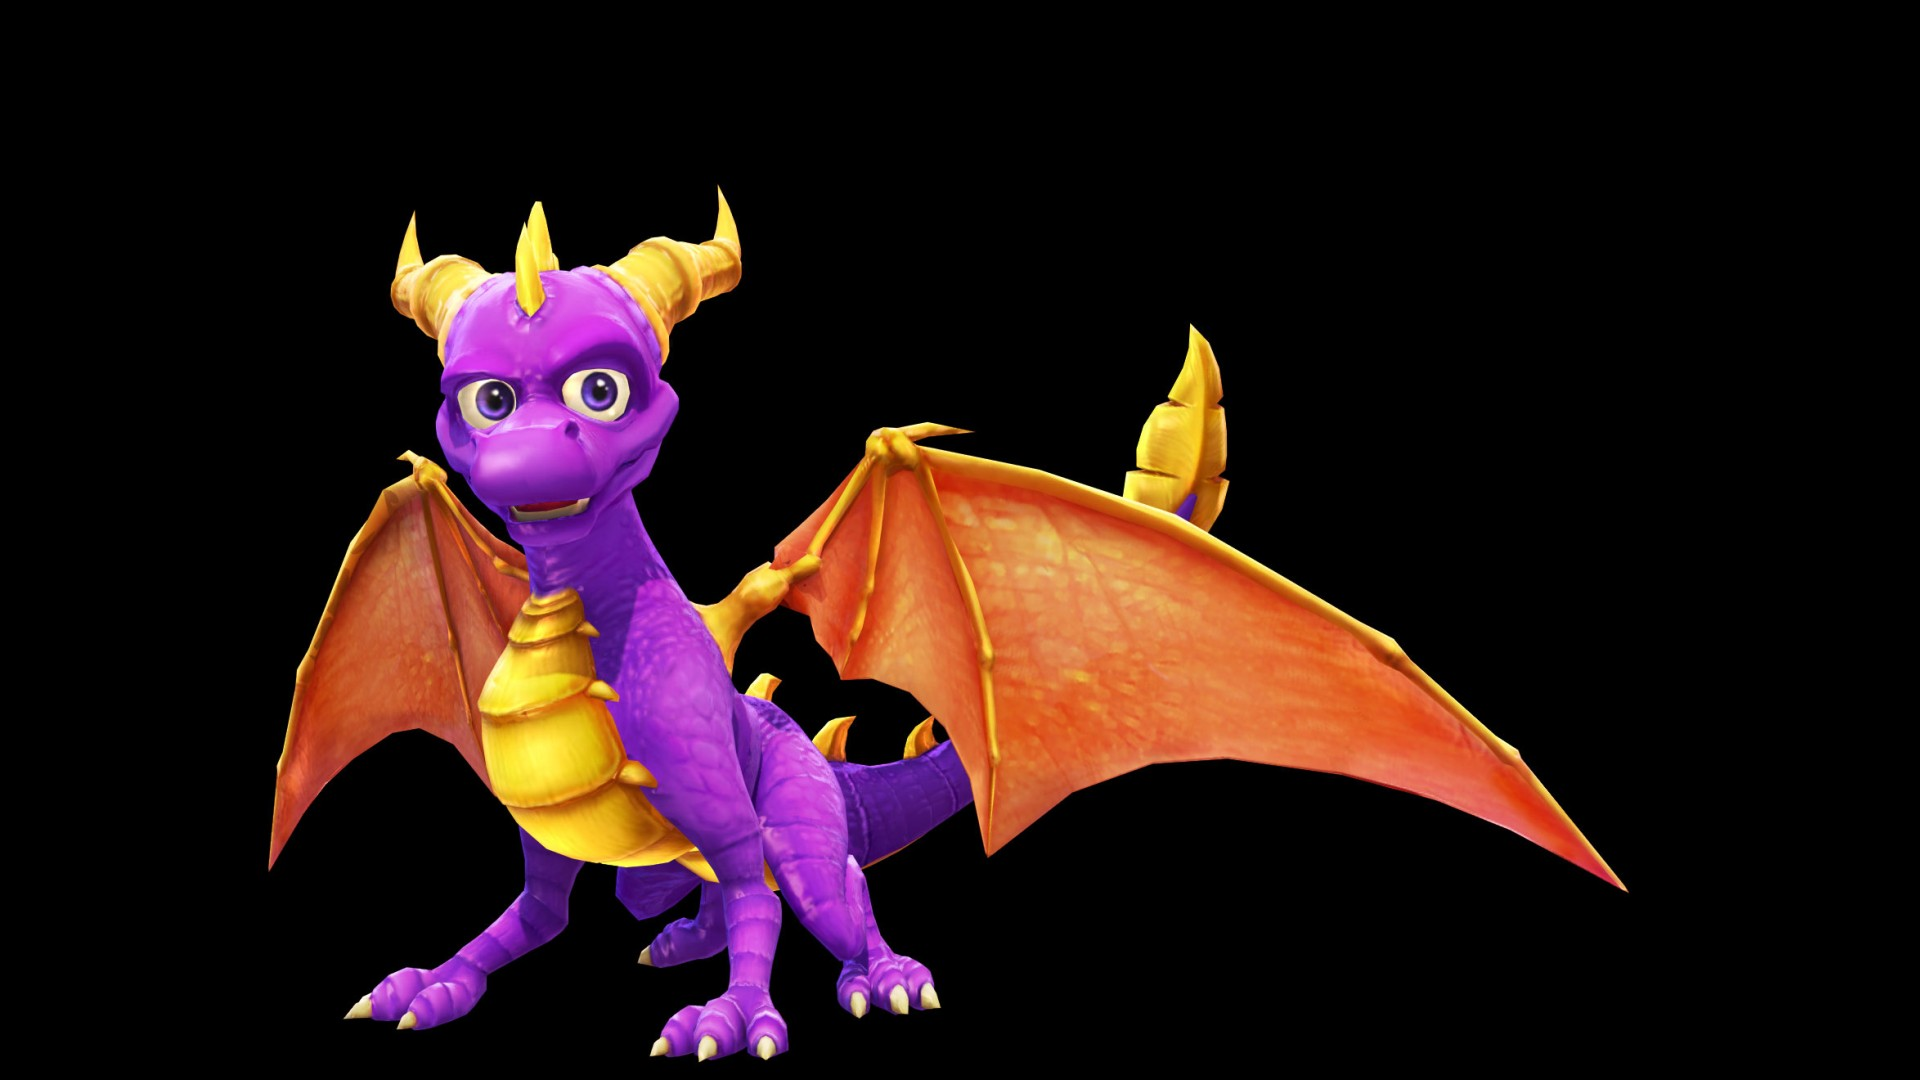 Spyro Iphone Wallpaper Spyro The Dragon Full Hd Wallpaper And Background Image